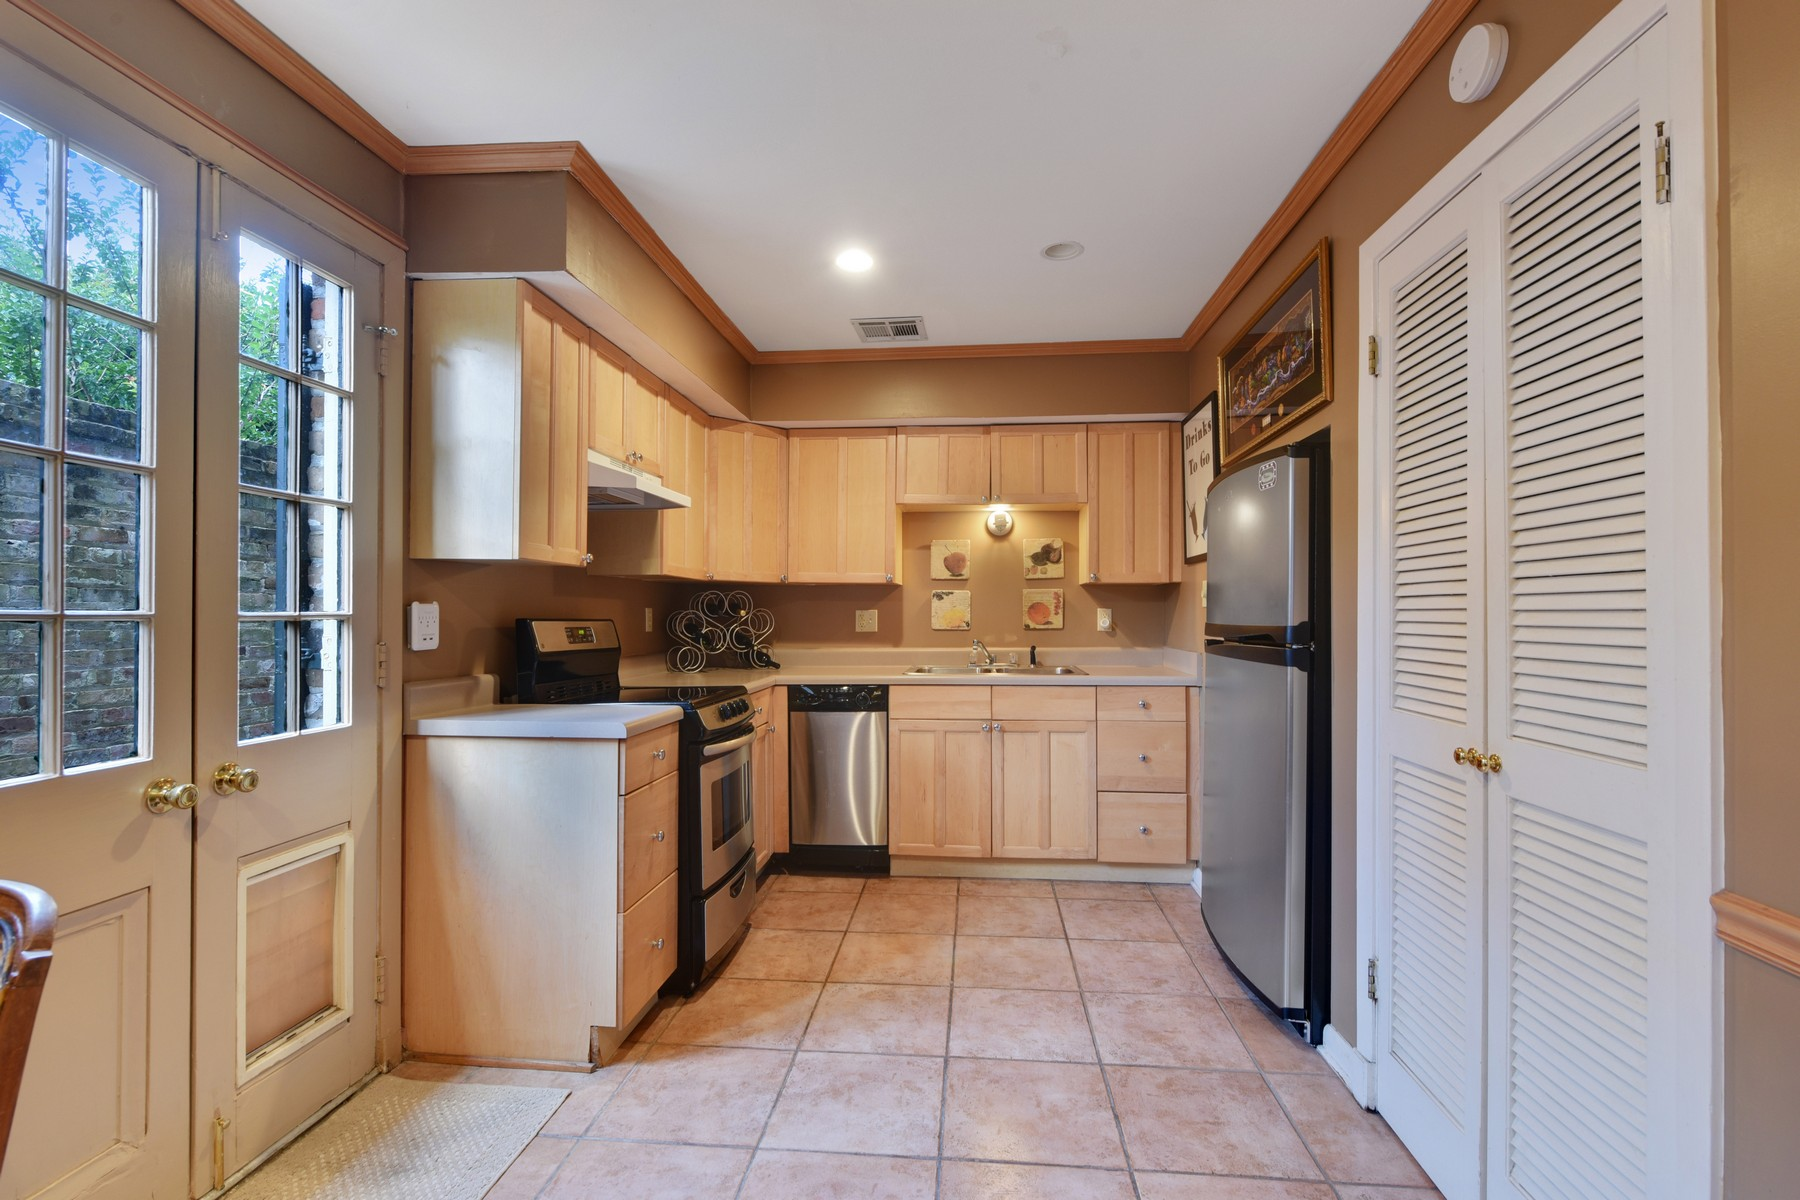 Additional photo for property listing at 1119 Dauphine St 1119 Dauphine St # 5 New Orleans, Louisiana 70116 Estados Unidos